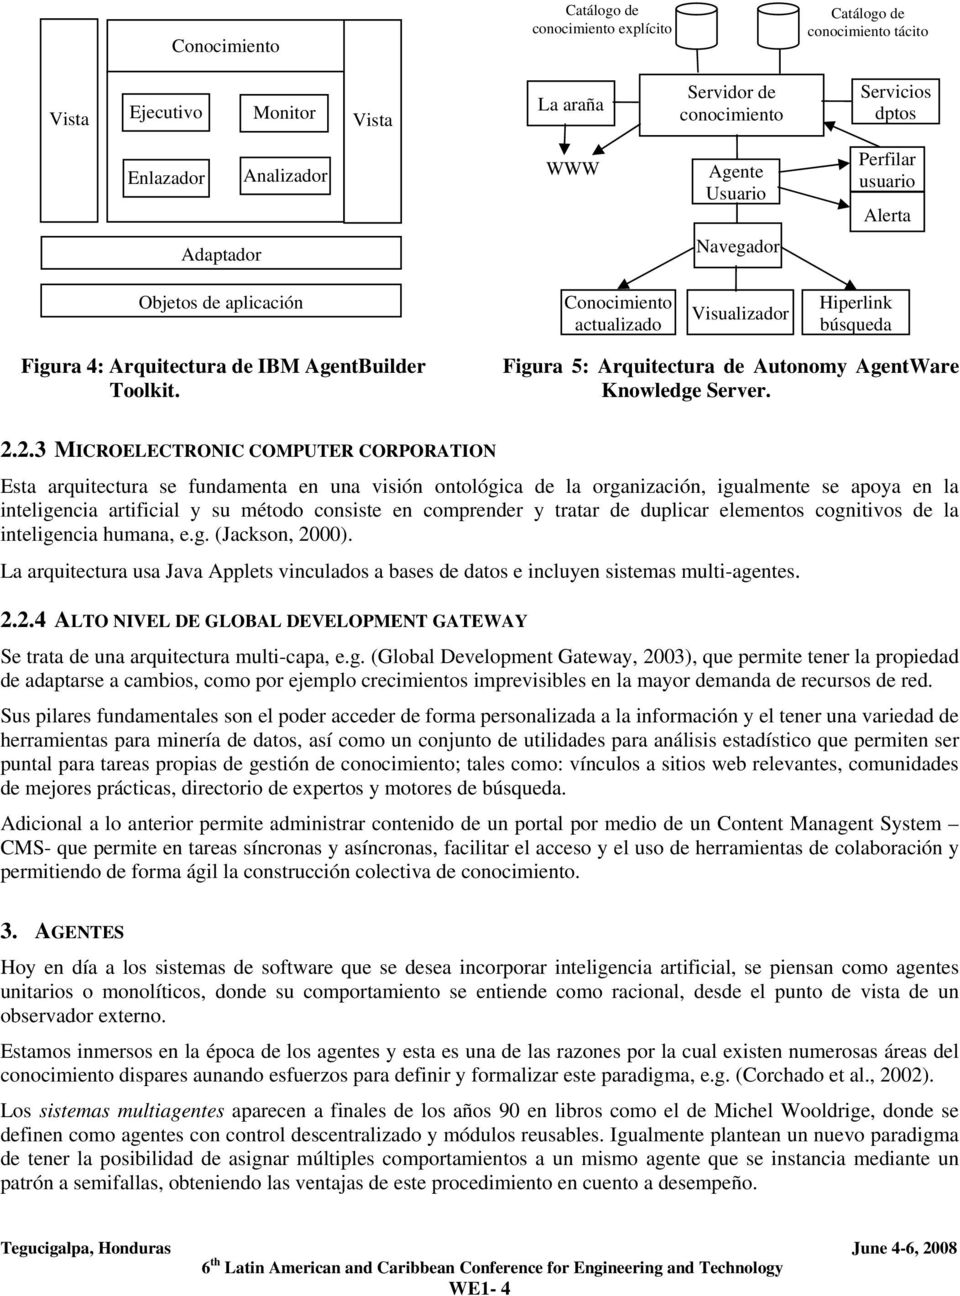 Figura 5: Arquitectura de Autonomy AgentWare Knowledge Server. 2.